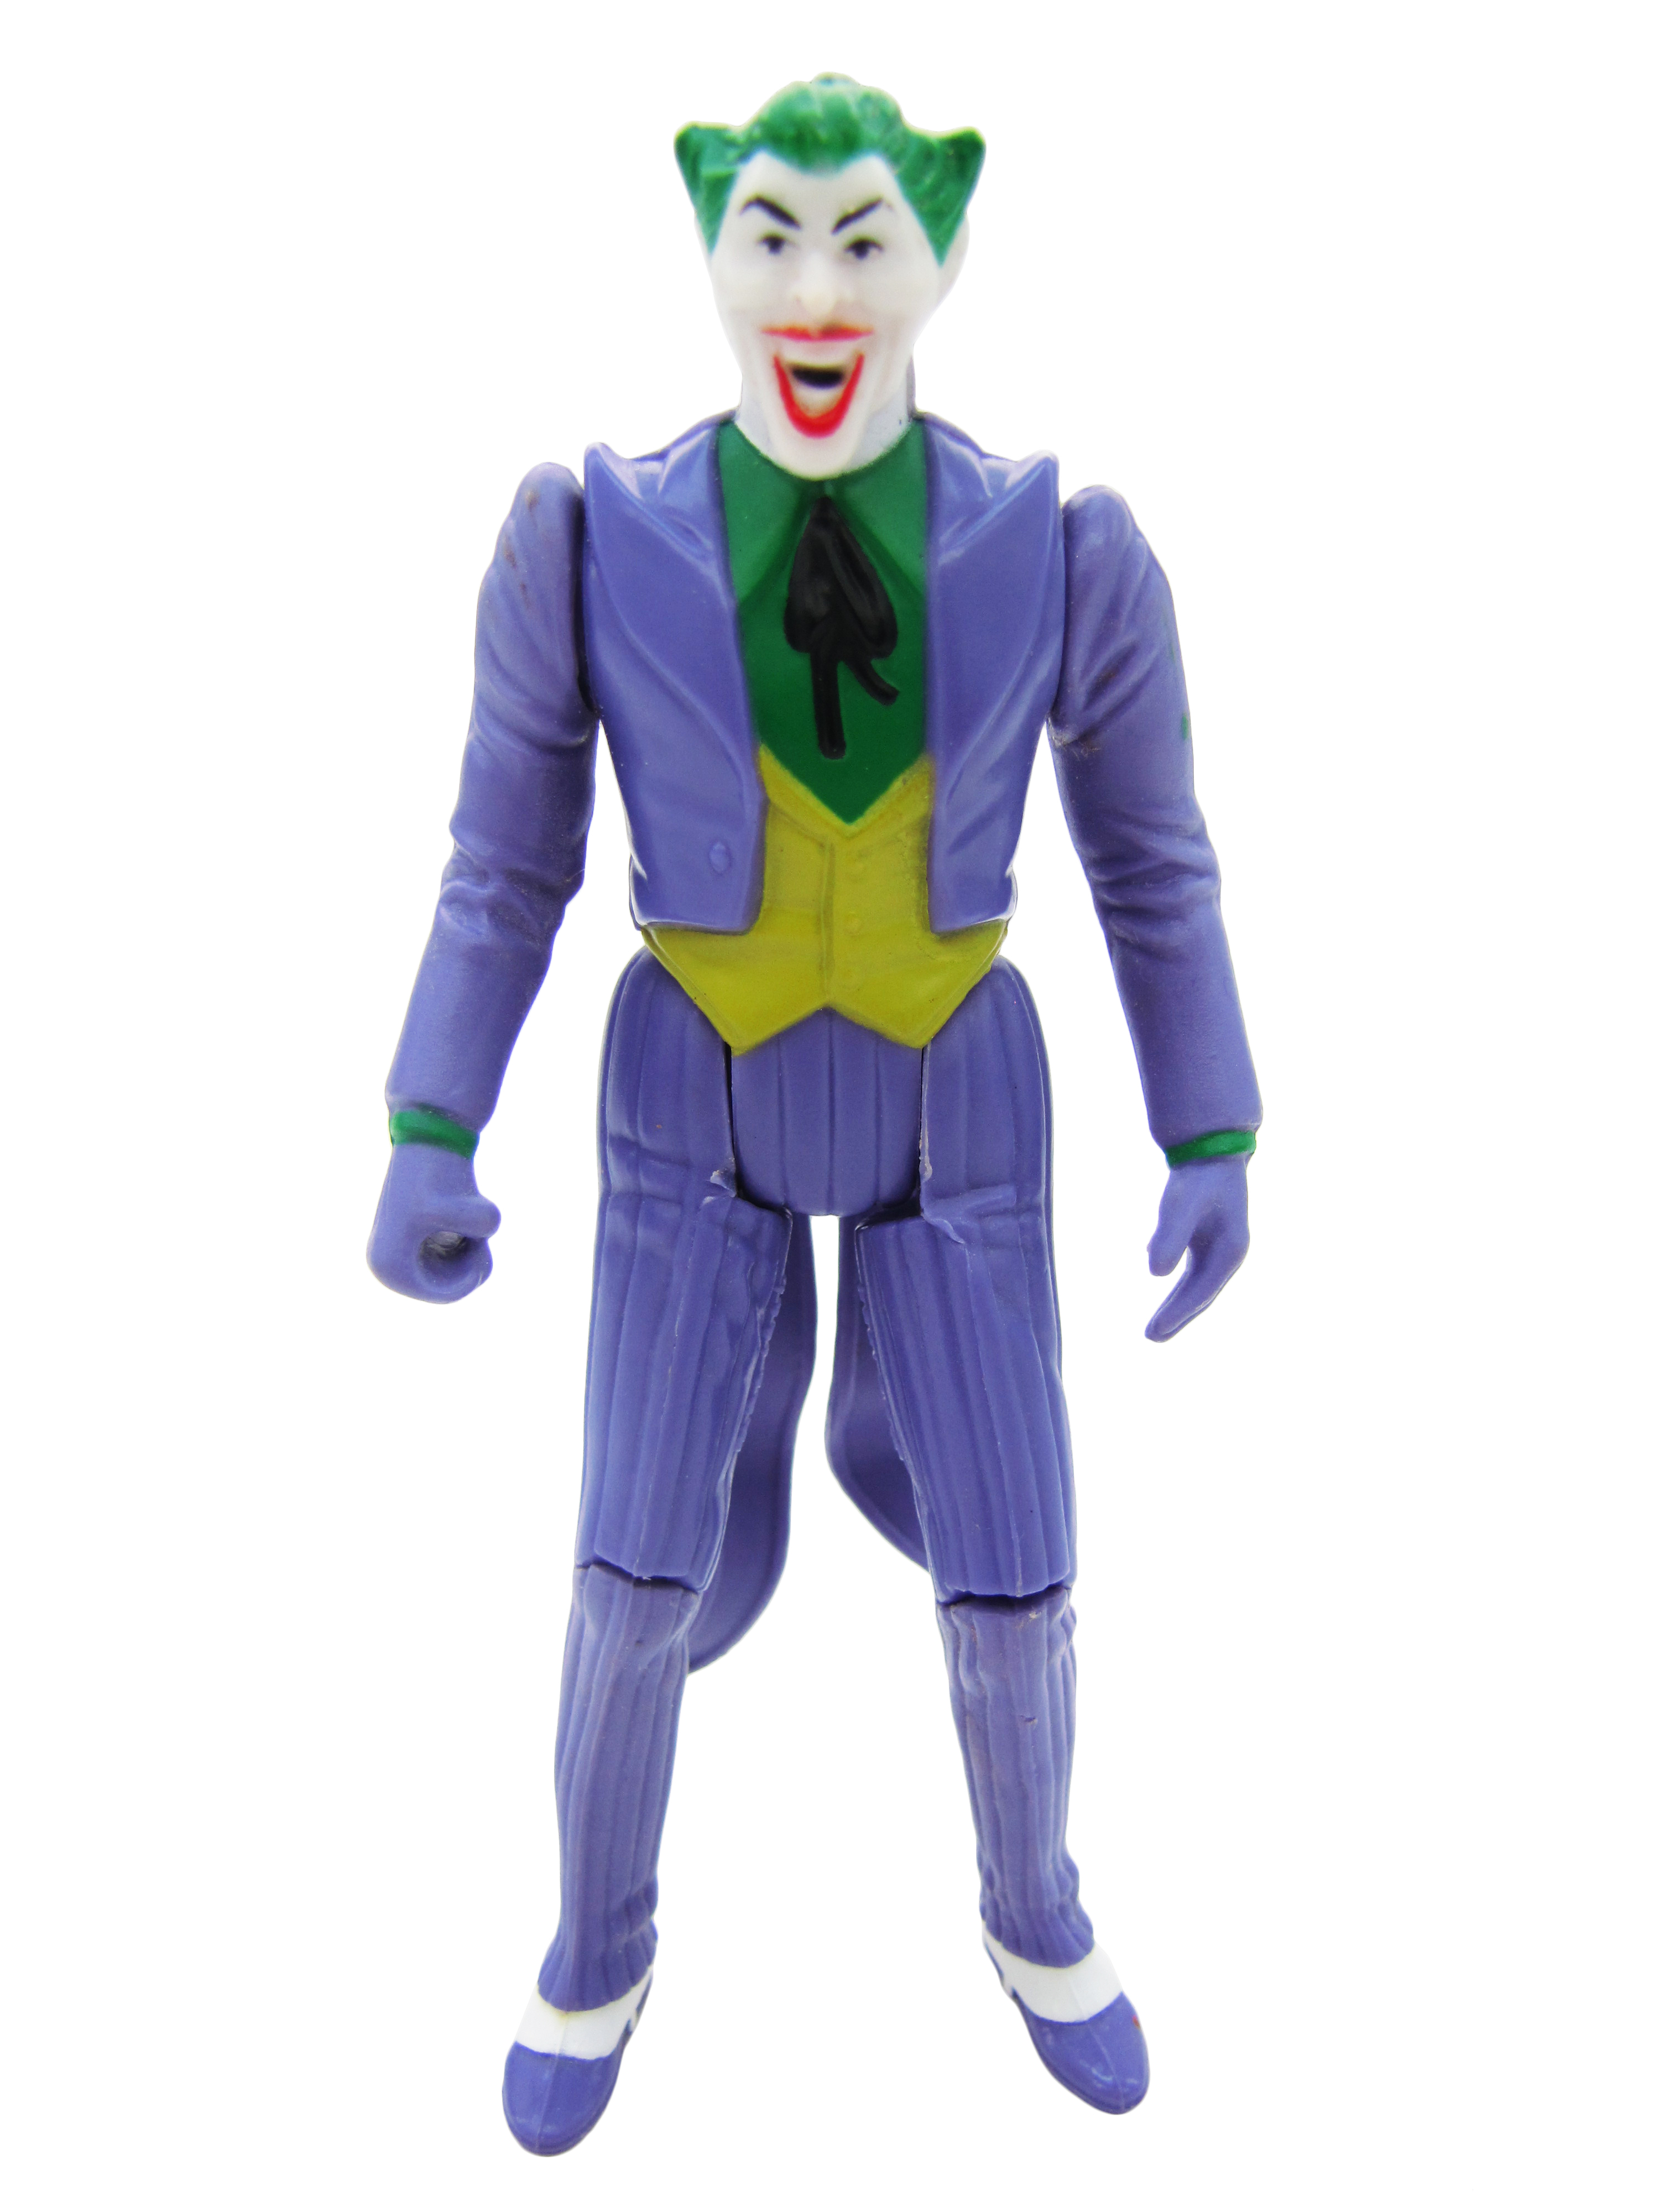 1984 DC Super Powers Collection THE JOKER with Coat Tails Mint Condition